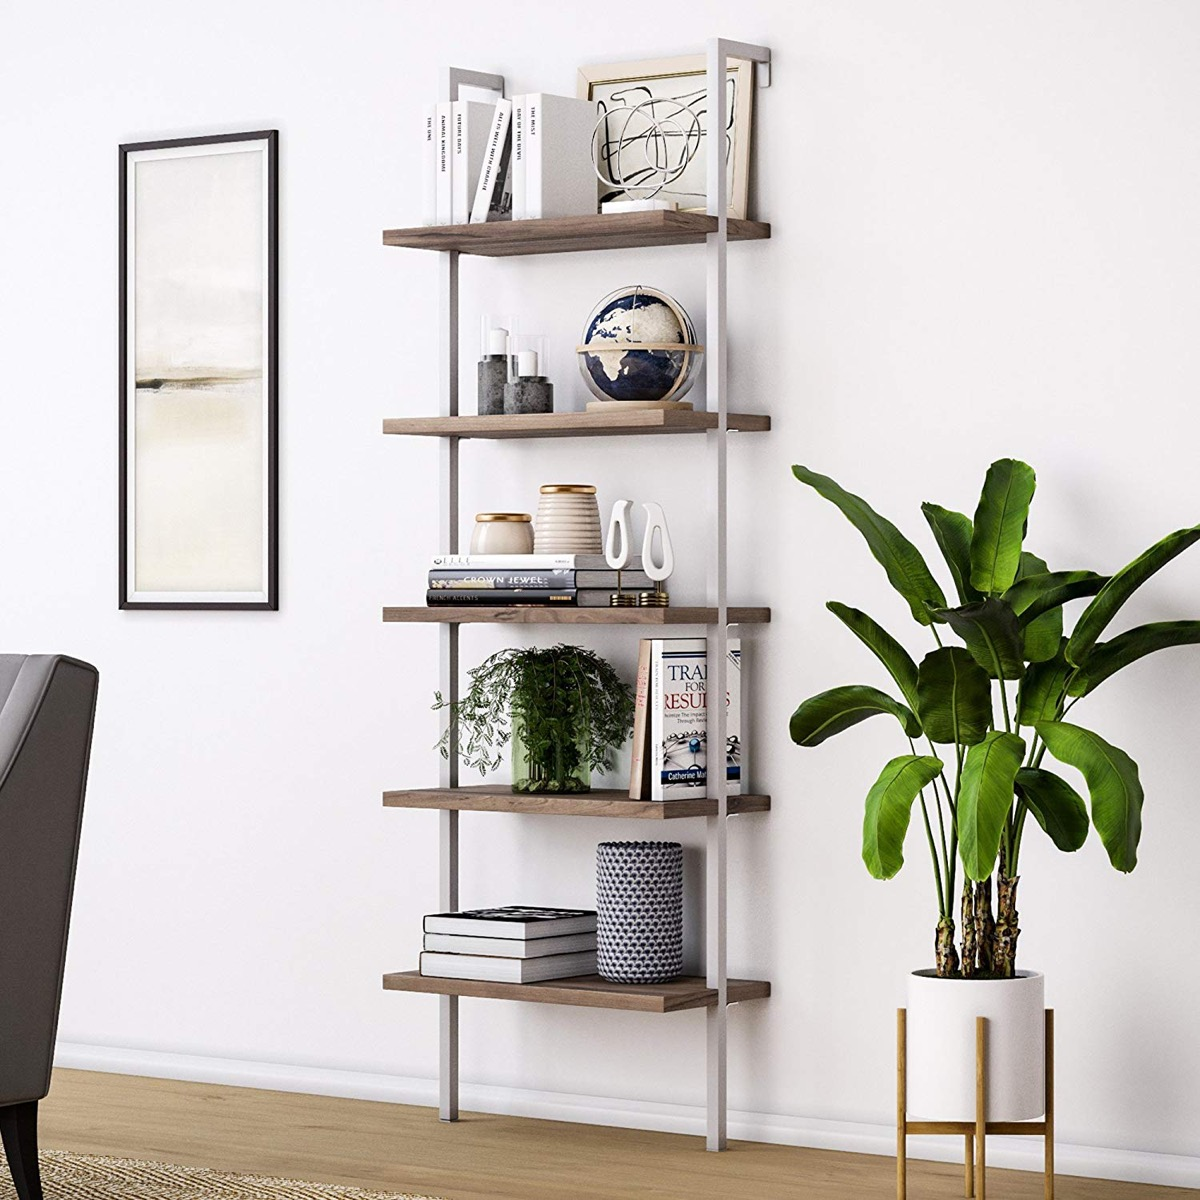 sleek-modern-wall-ladder-shelf-with-metal-frame-and-wood-shelves-mounts-to-wall